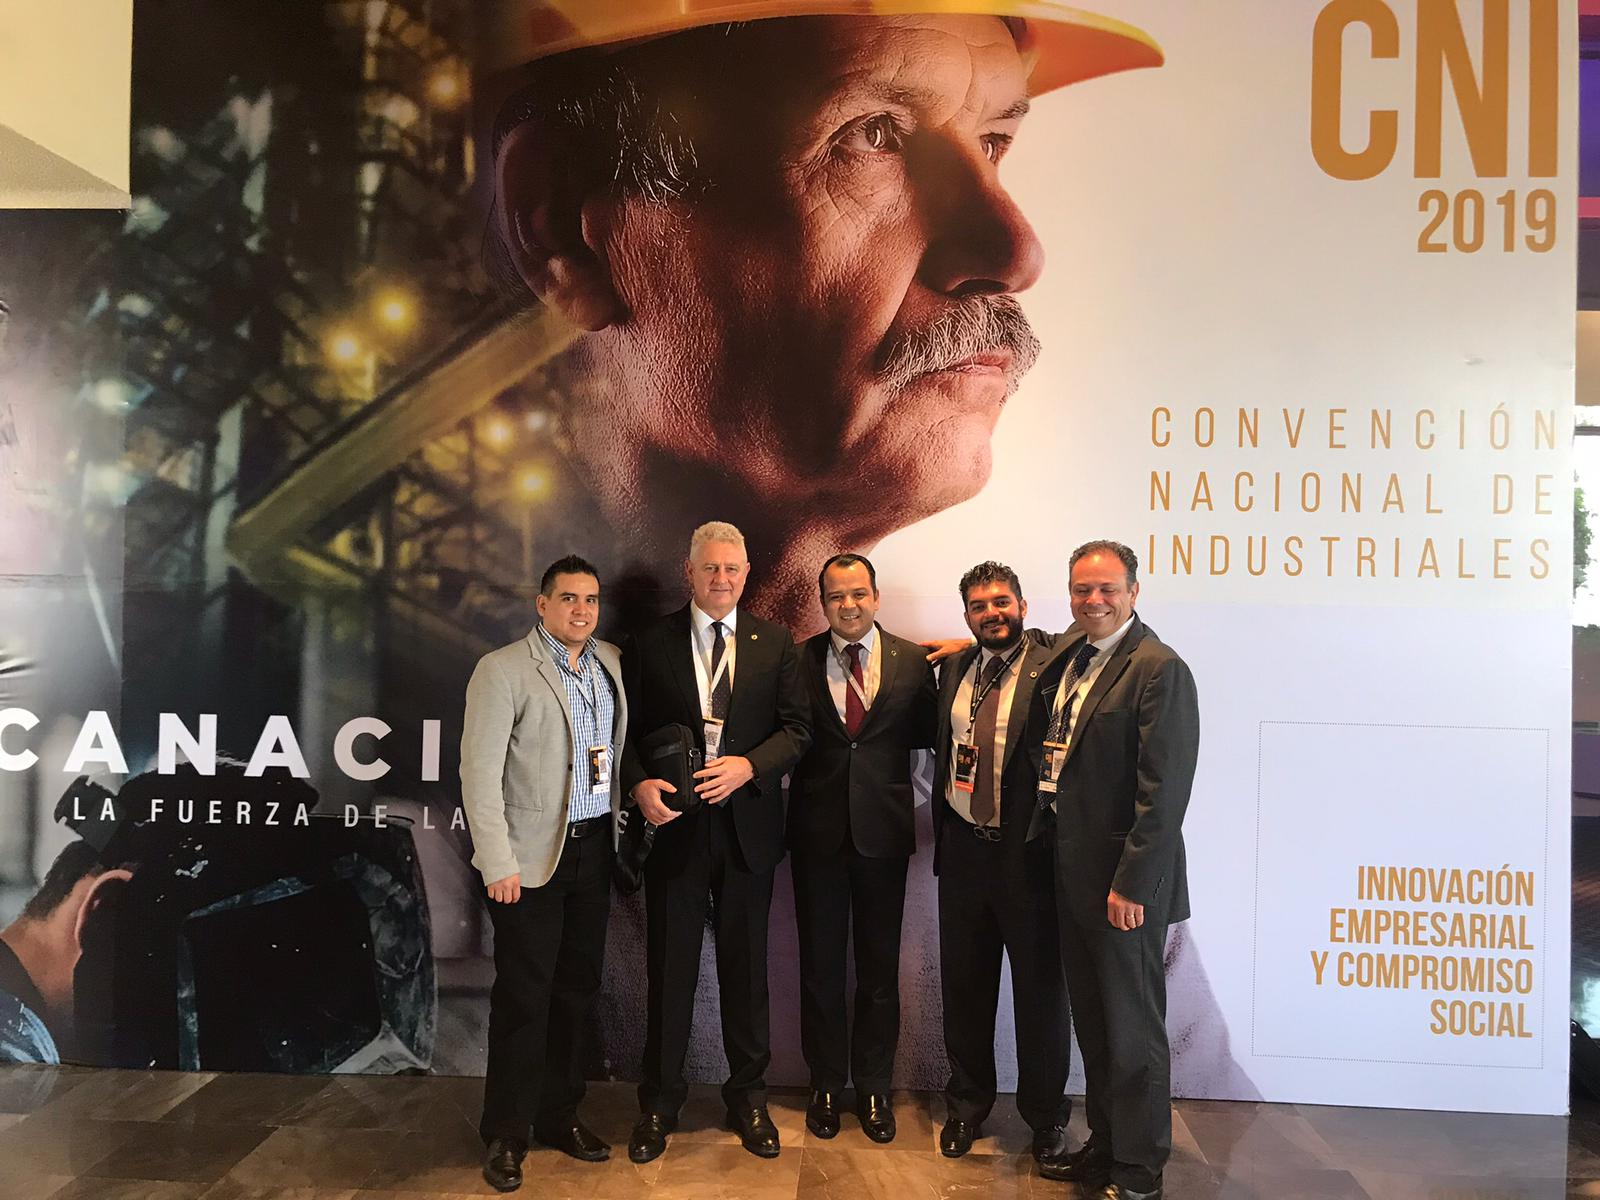 Gémina attended the CANACINTRA National Convention of industries 2019